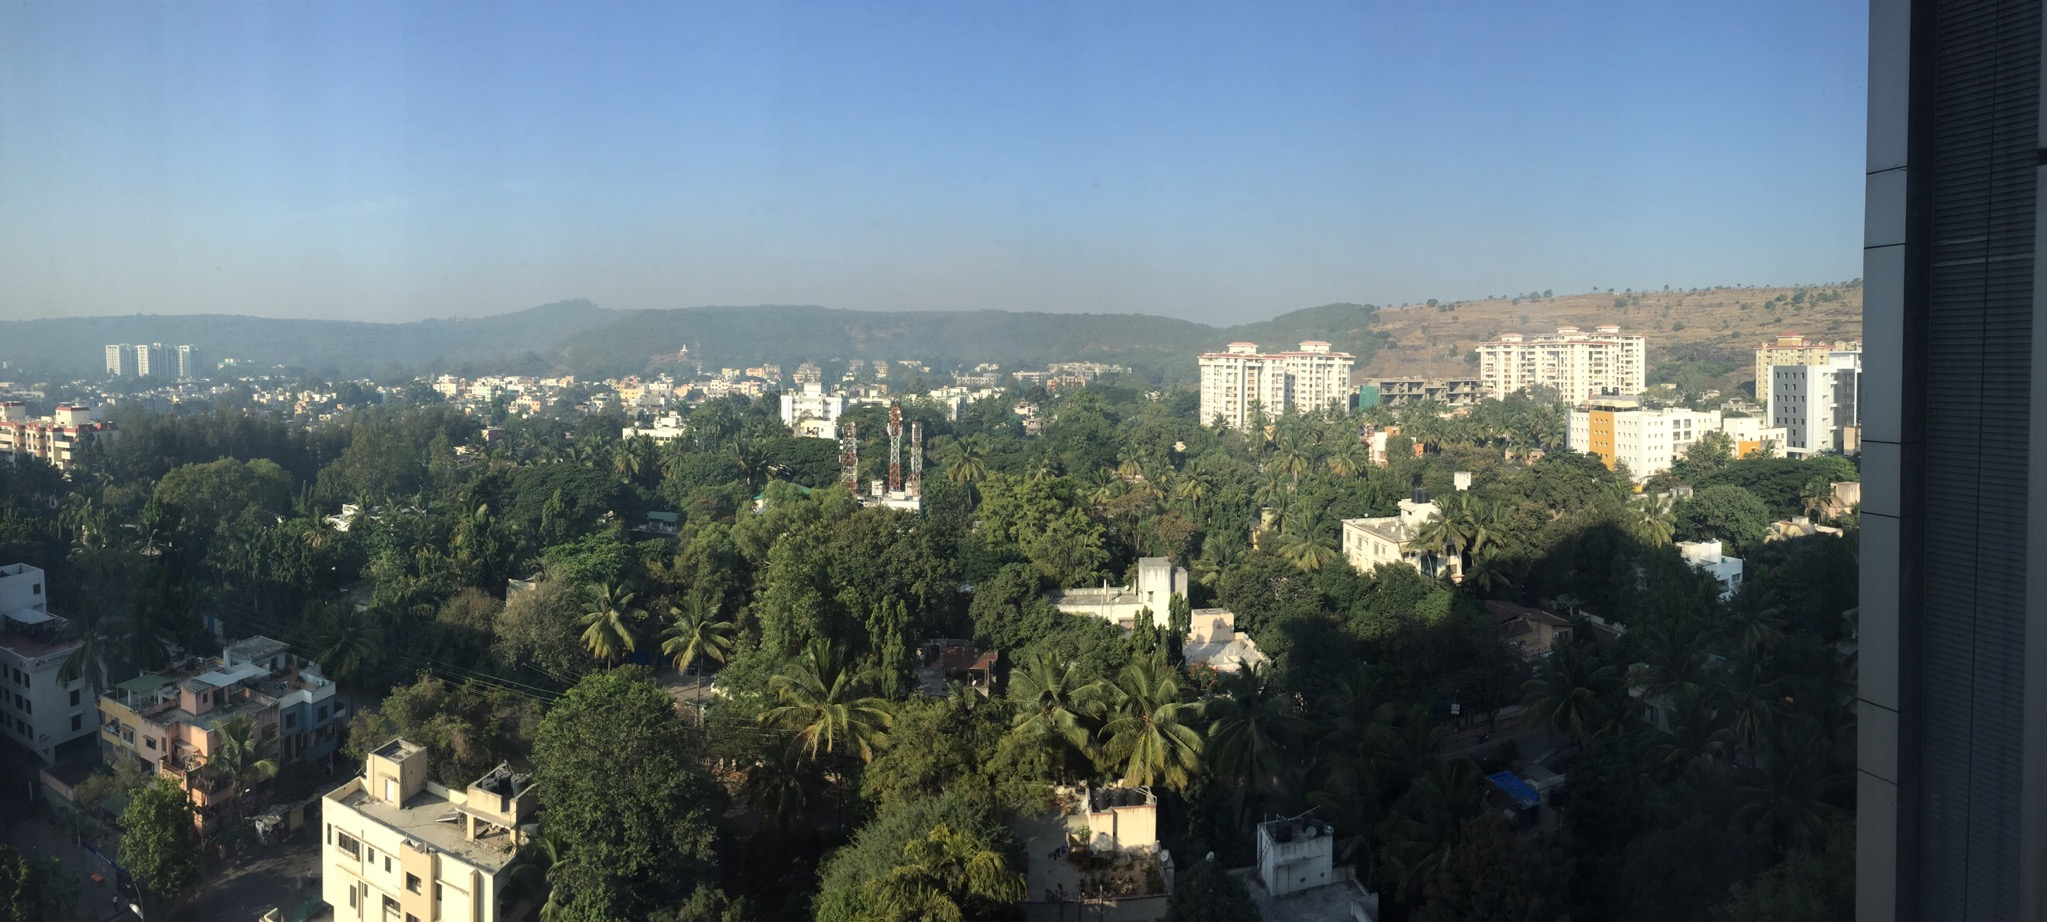 Pune India from the JW Marriot